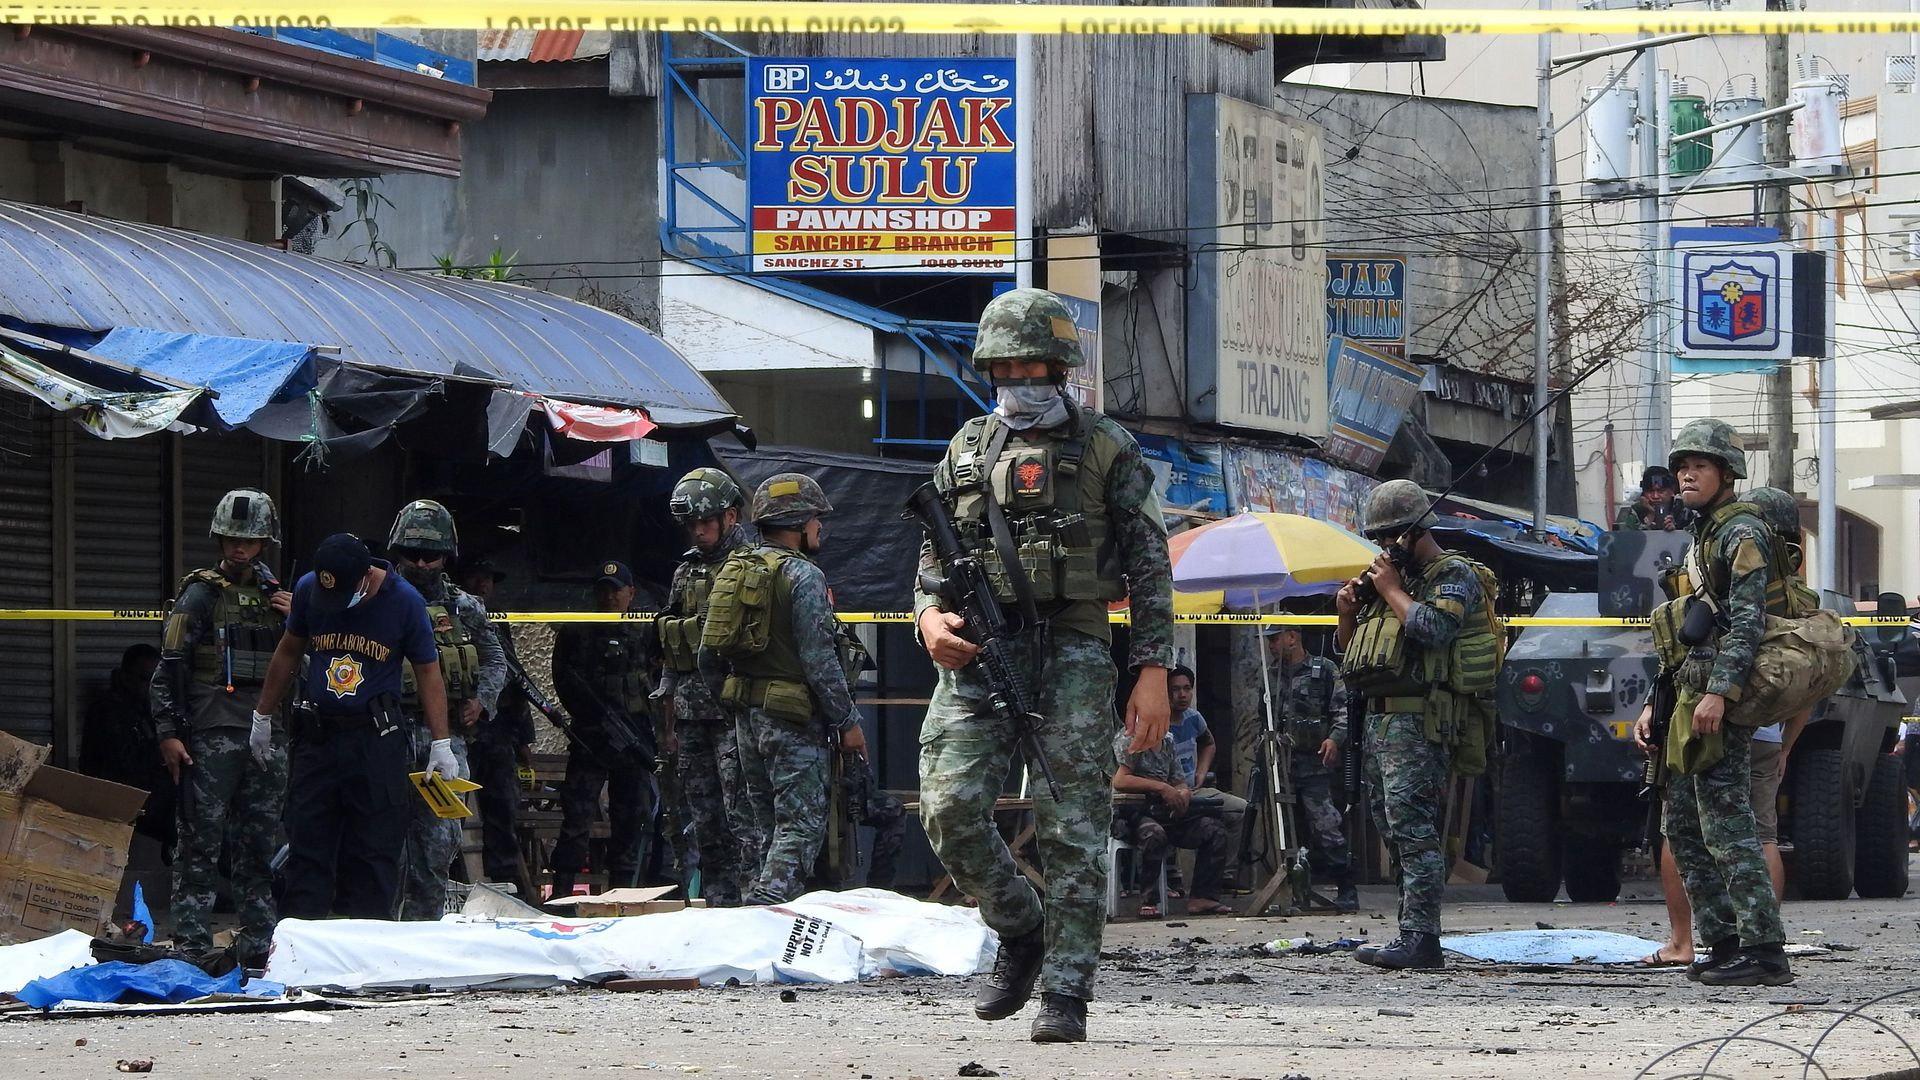 Military cleans up after bombs detonated in Philippines